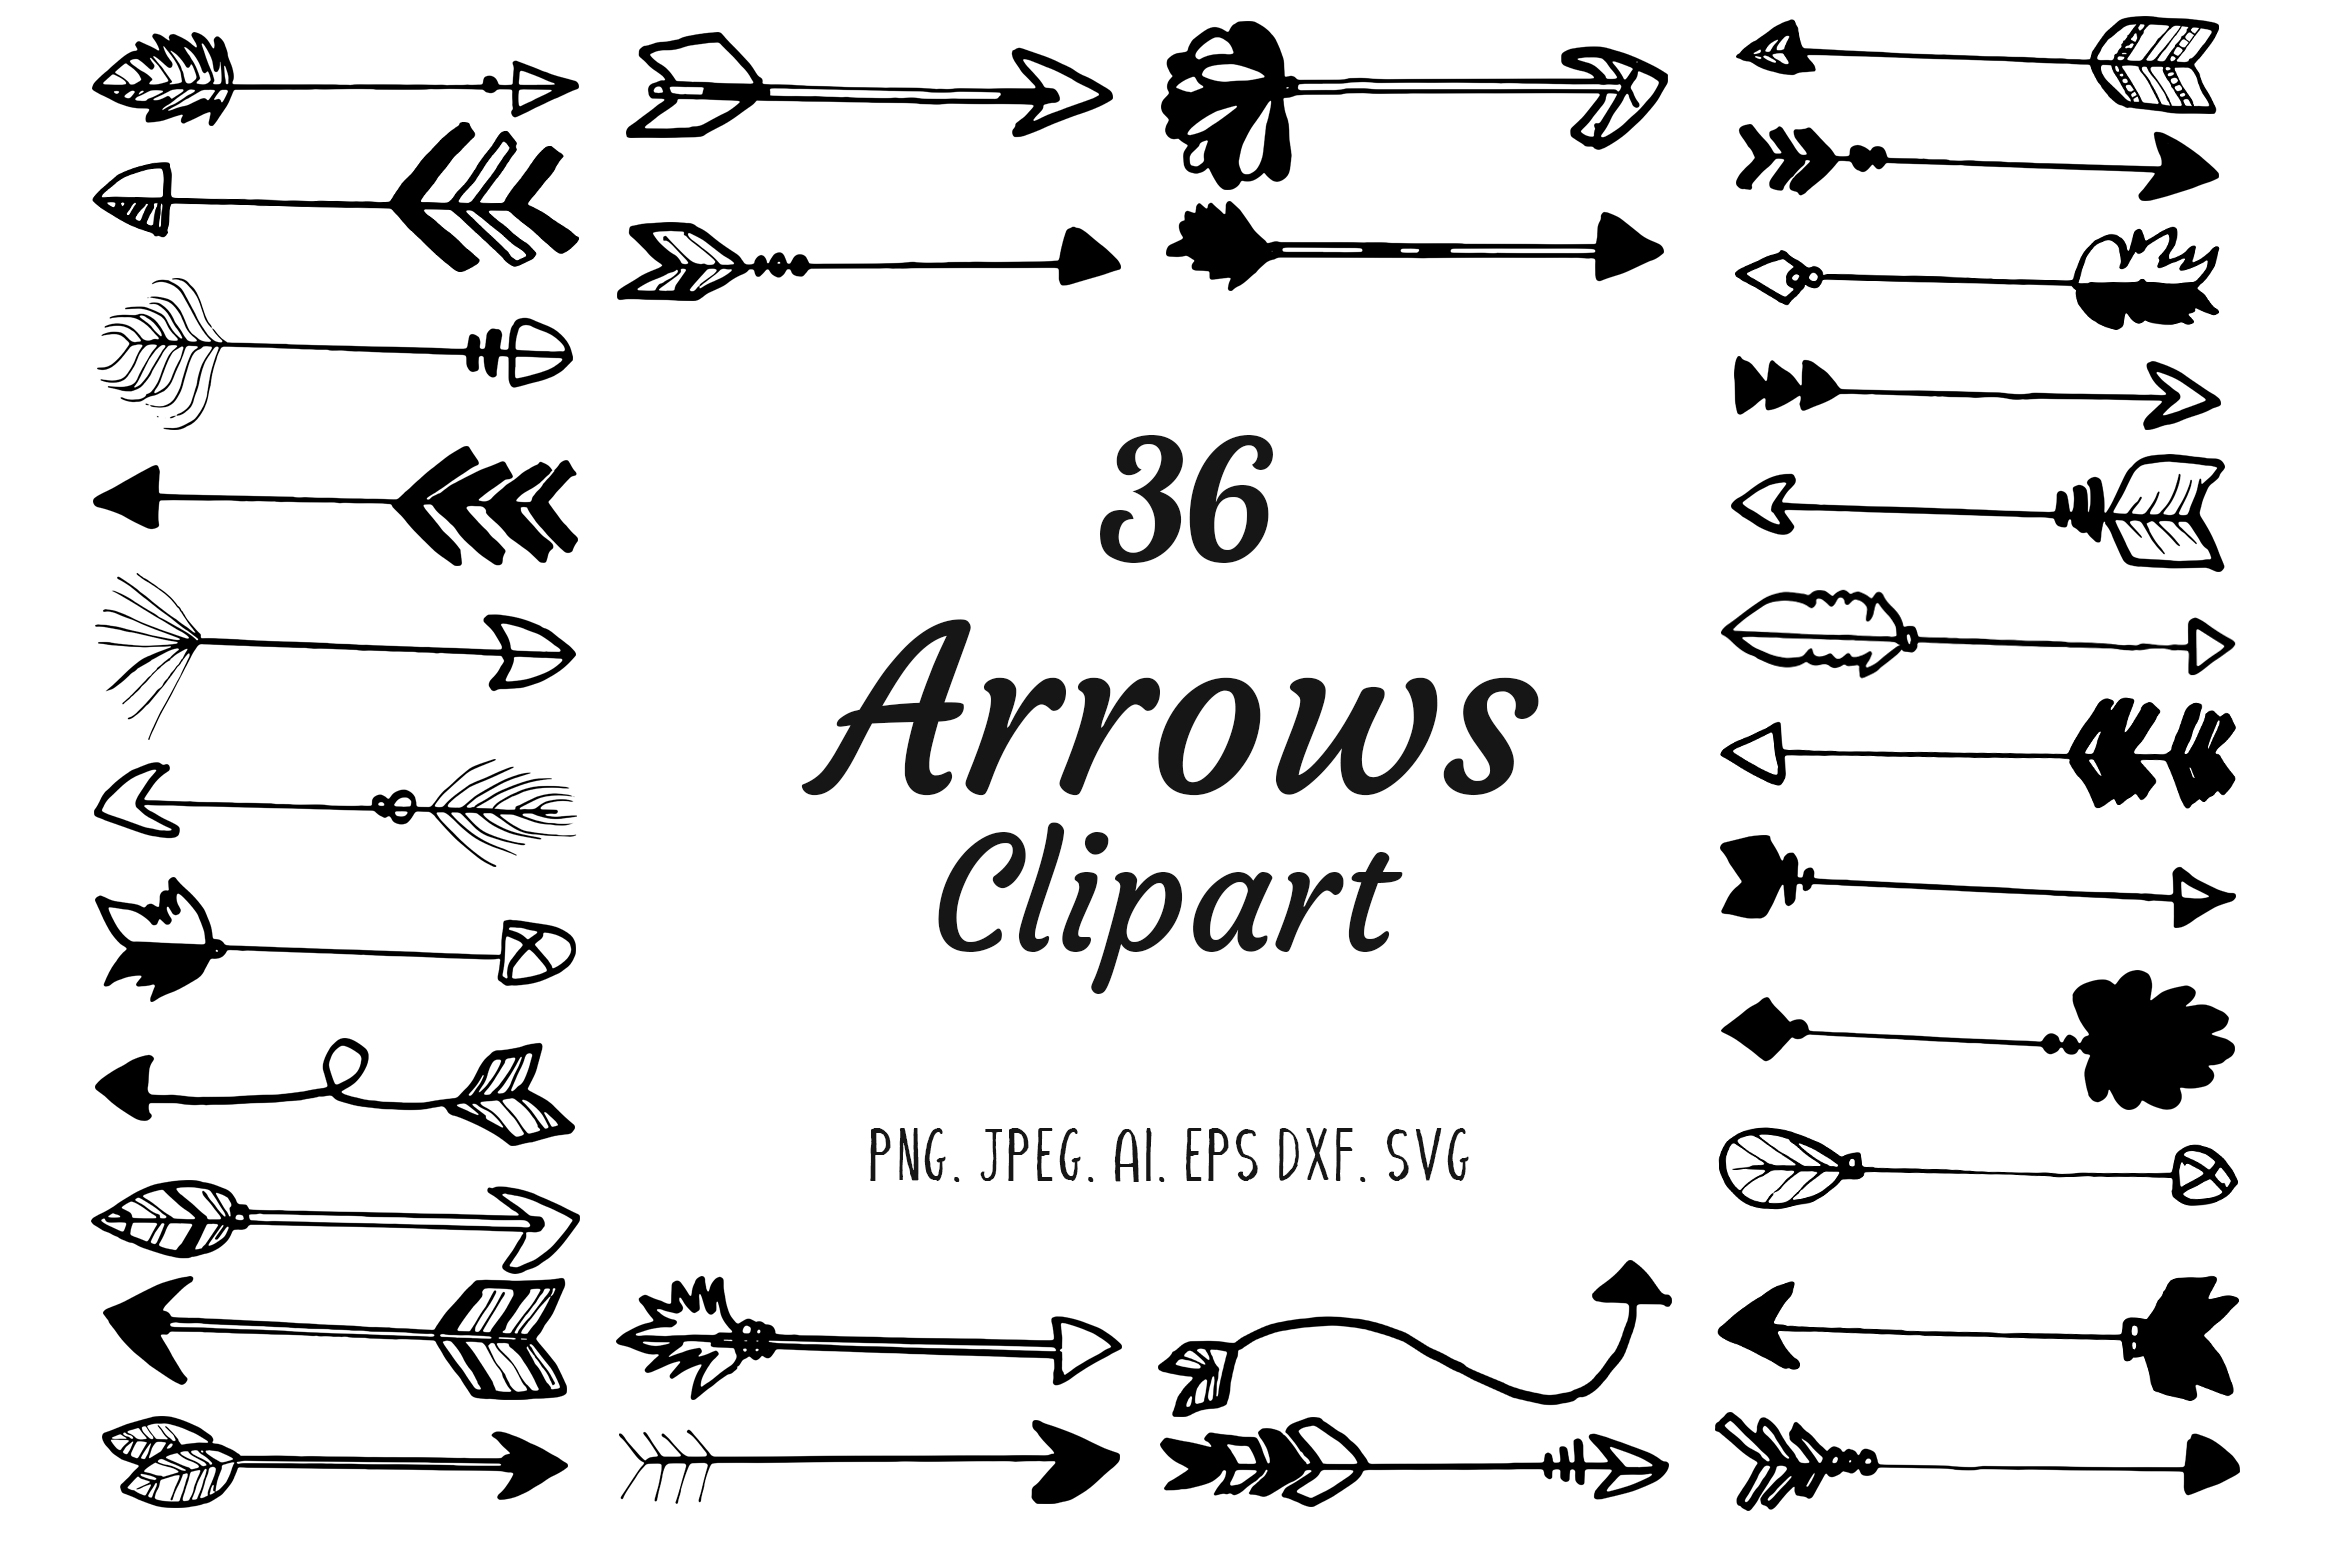 Download Free 30 Premium Handdrawn Arrows Clipart Graphic By Creative Tacos for Cricut Explore, Silhouette and other cutting machines.